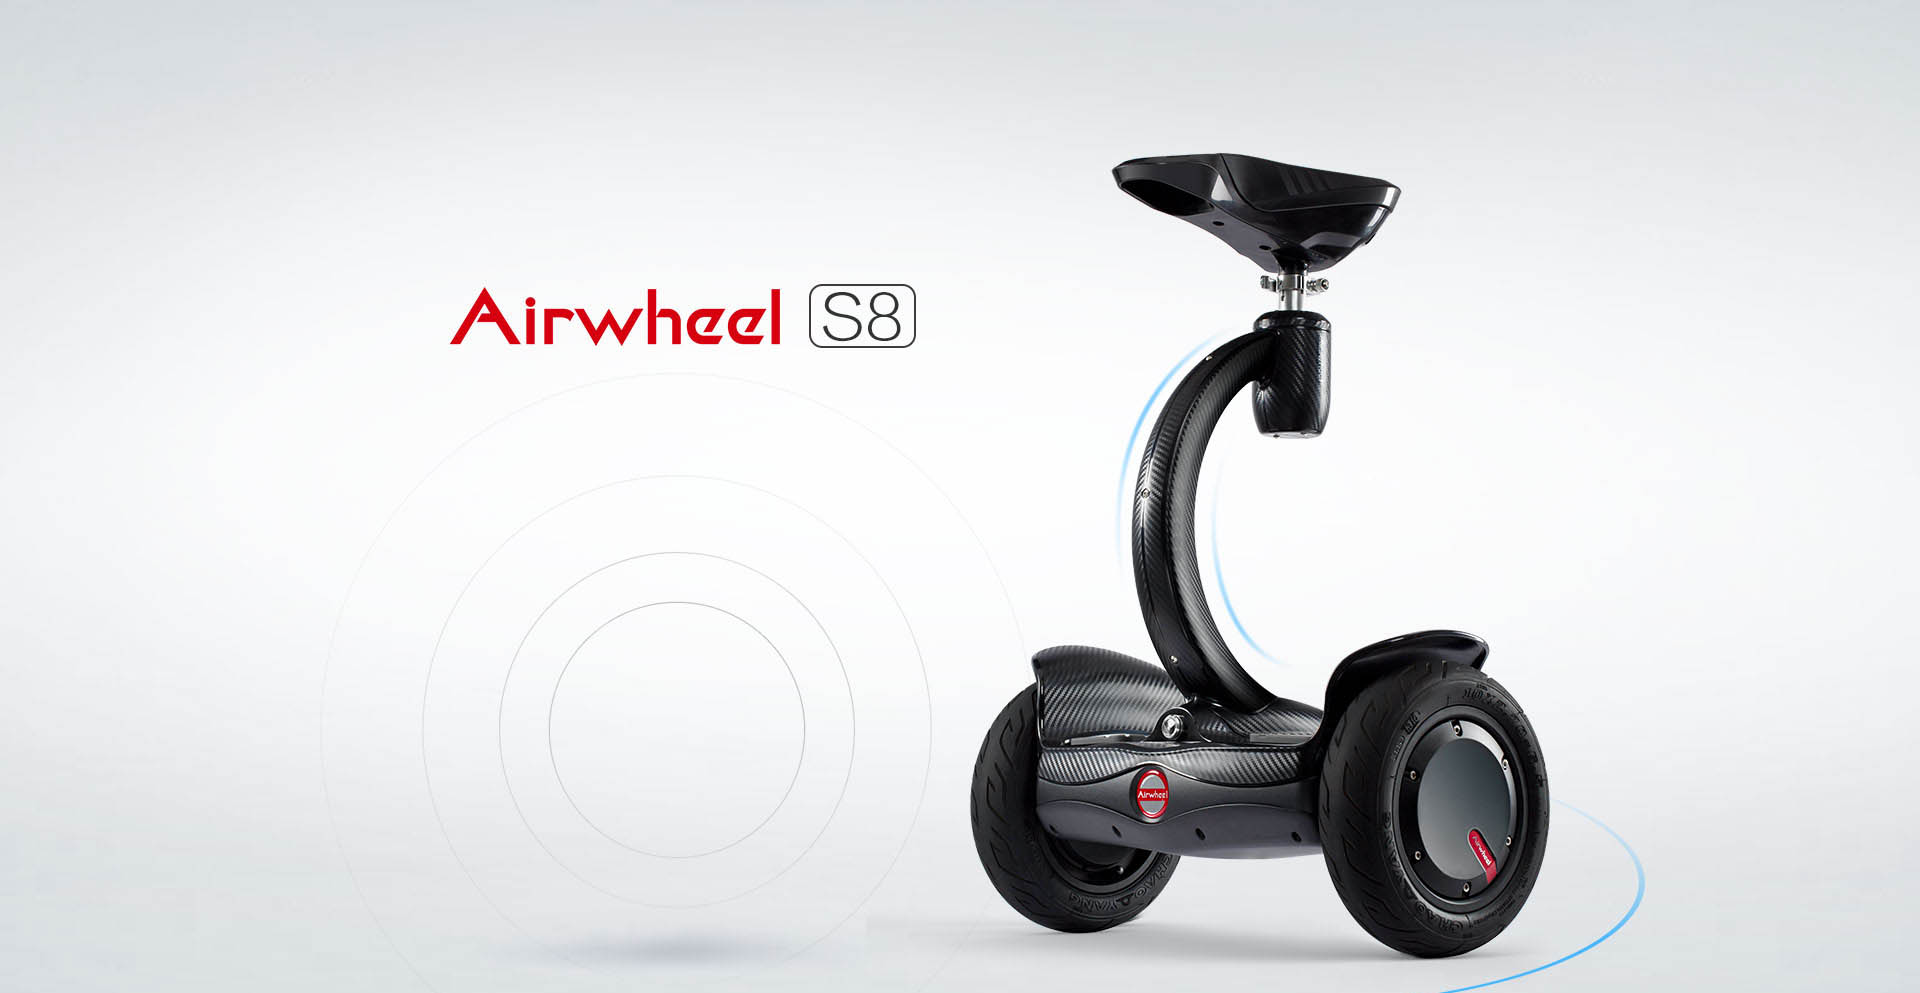 Airwheel S8 two wheel electric walkcar